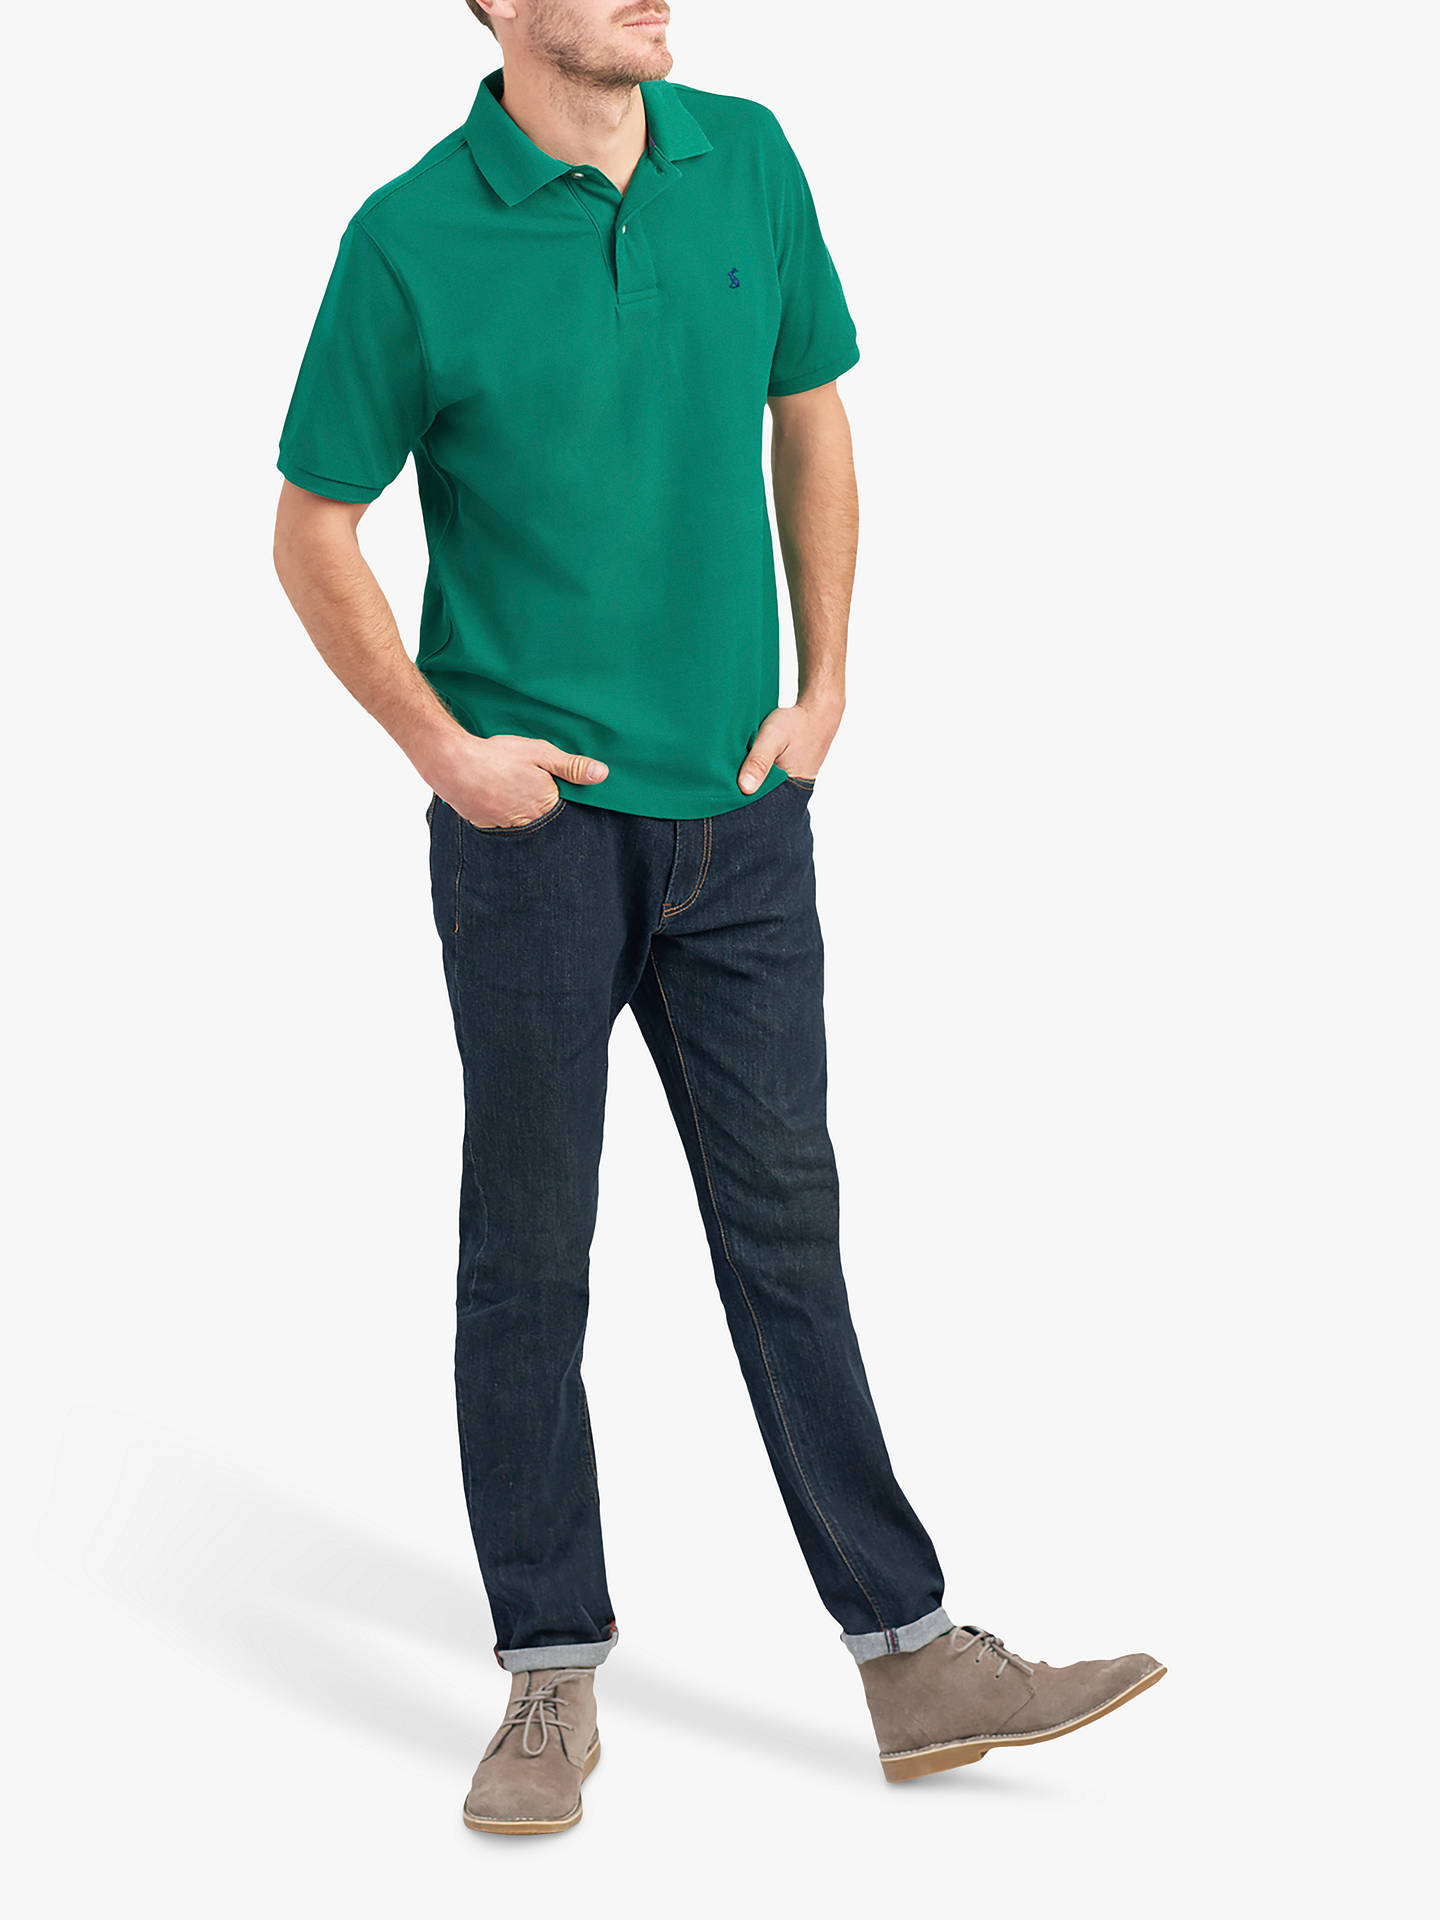 b23fa8705f8e5 Buy Joules Woody Classic Polo Shirt, Green, S Online at johnlewis.com ...